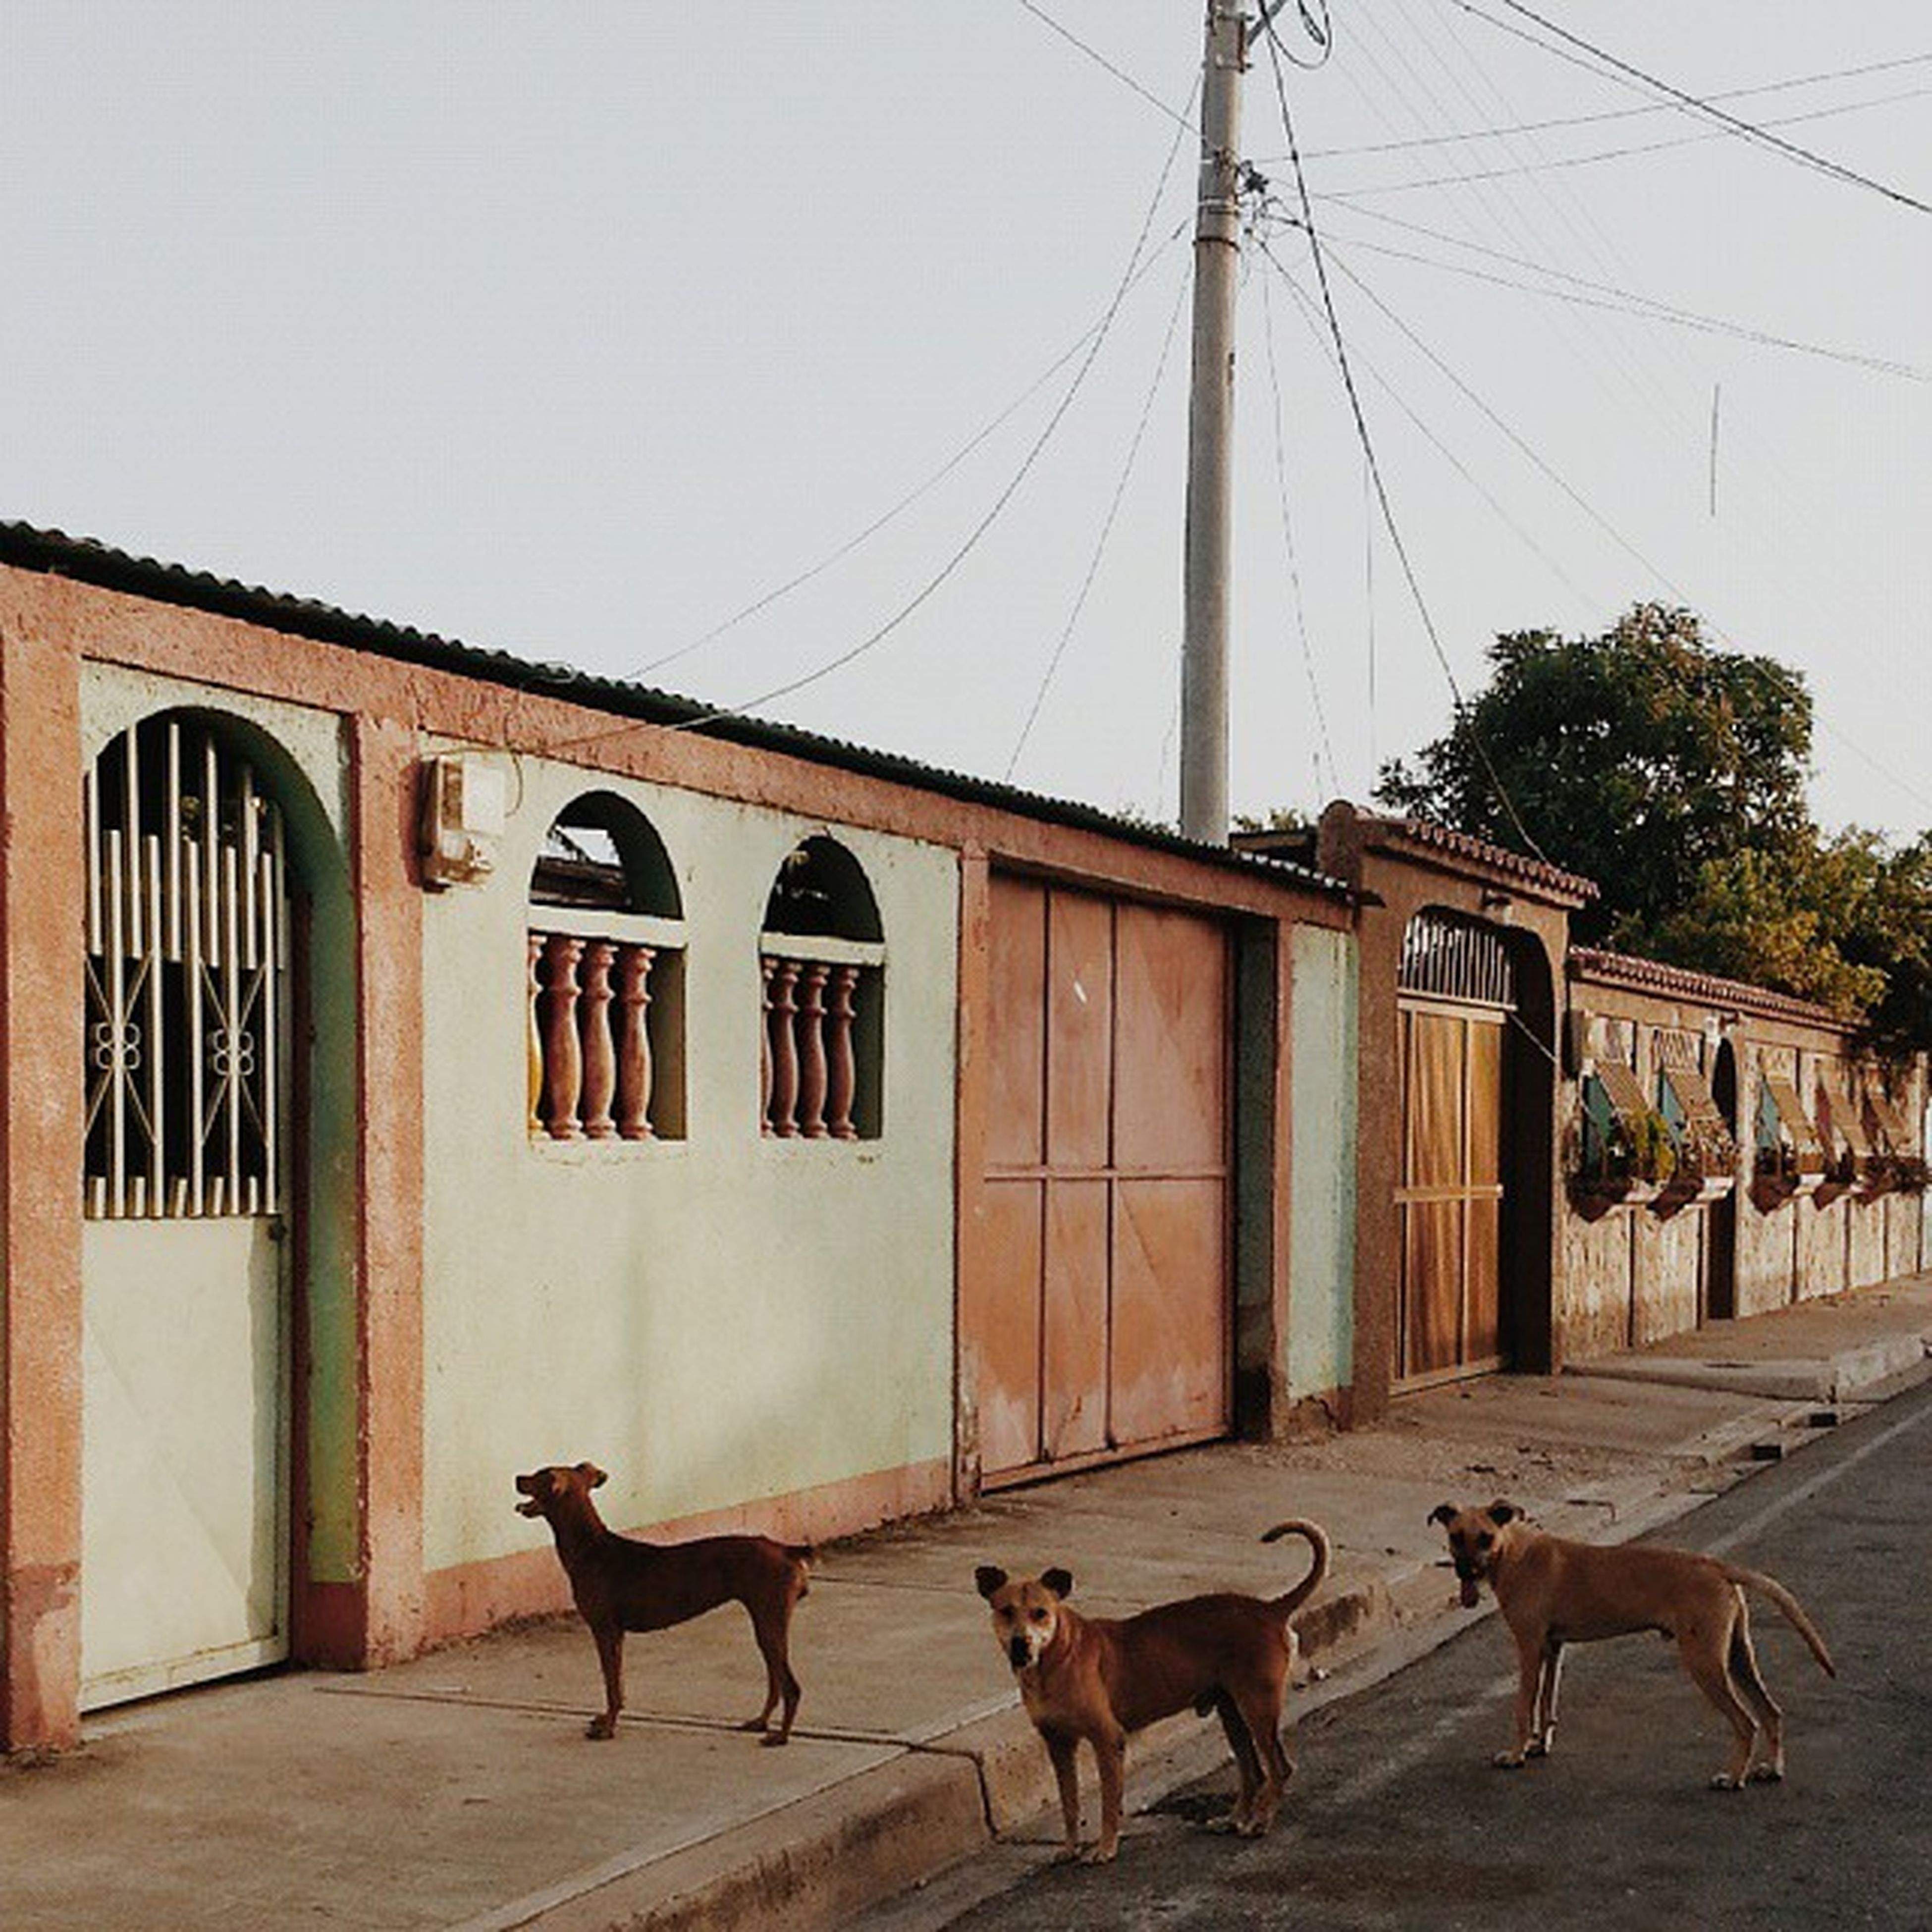 animal themes, domestic animals, building exterior, one animal, architecture, built structure, mammal, pets, clear sky, dog, street, two animals, house, outdoors, residential structure, day, full length, side view, walking, residential building